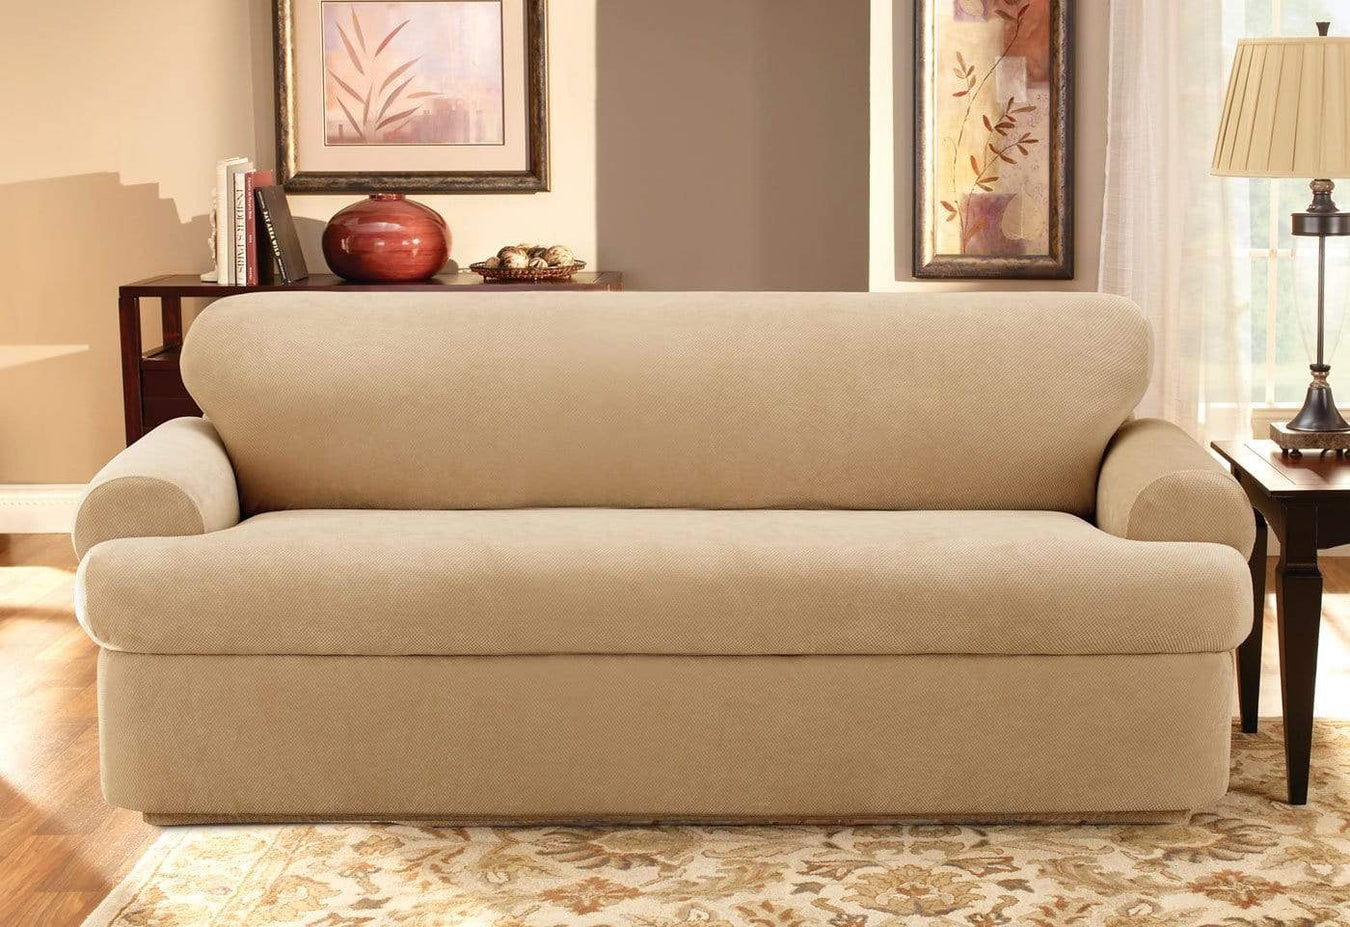 New Slipcover Stretch Sofa Cover Sofa With Loveseat Chair: Stretch Pique Three Piece With Back Cushion Sofa Slipcover